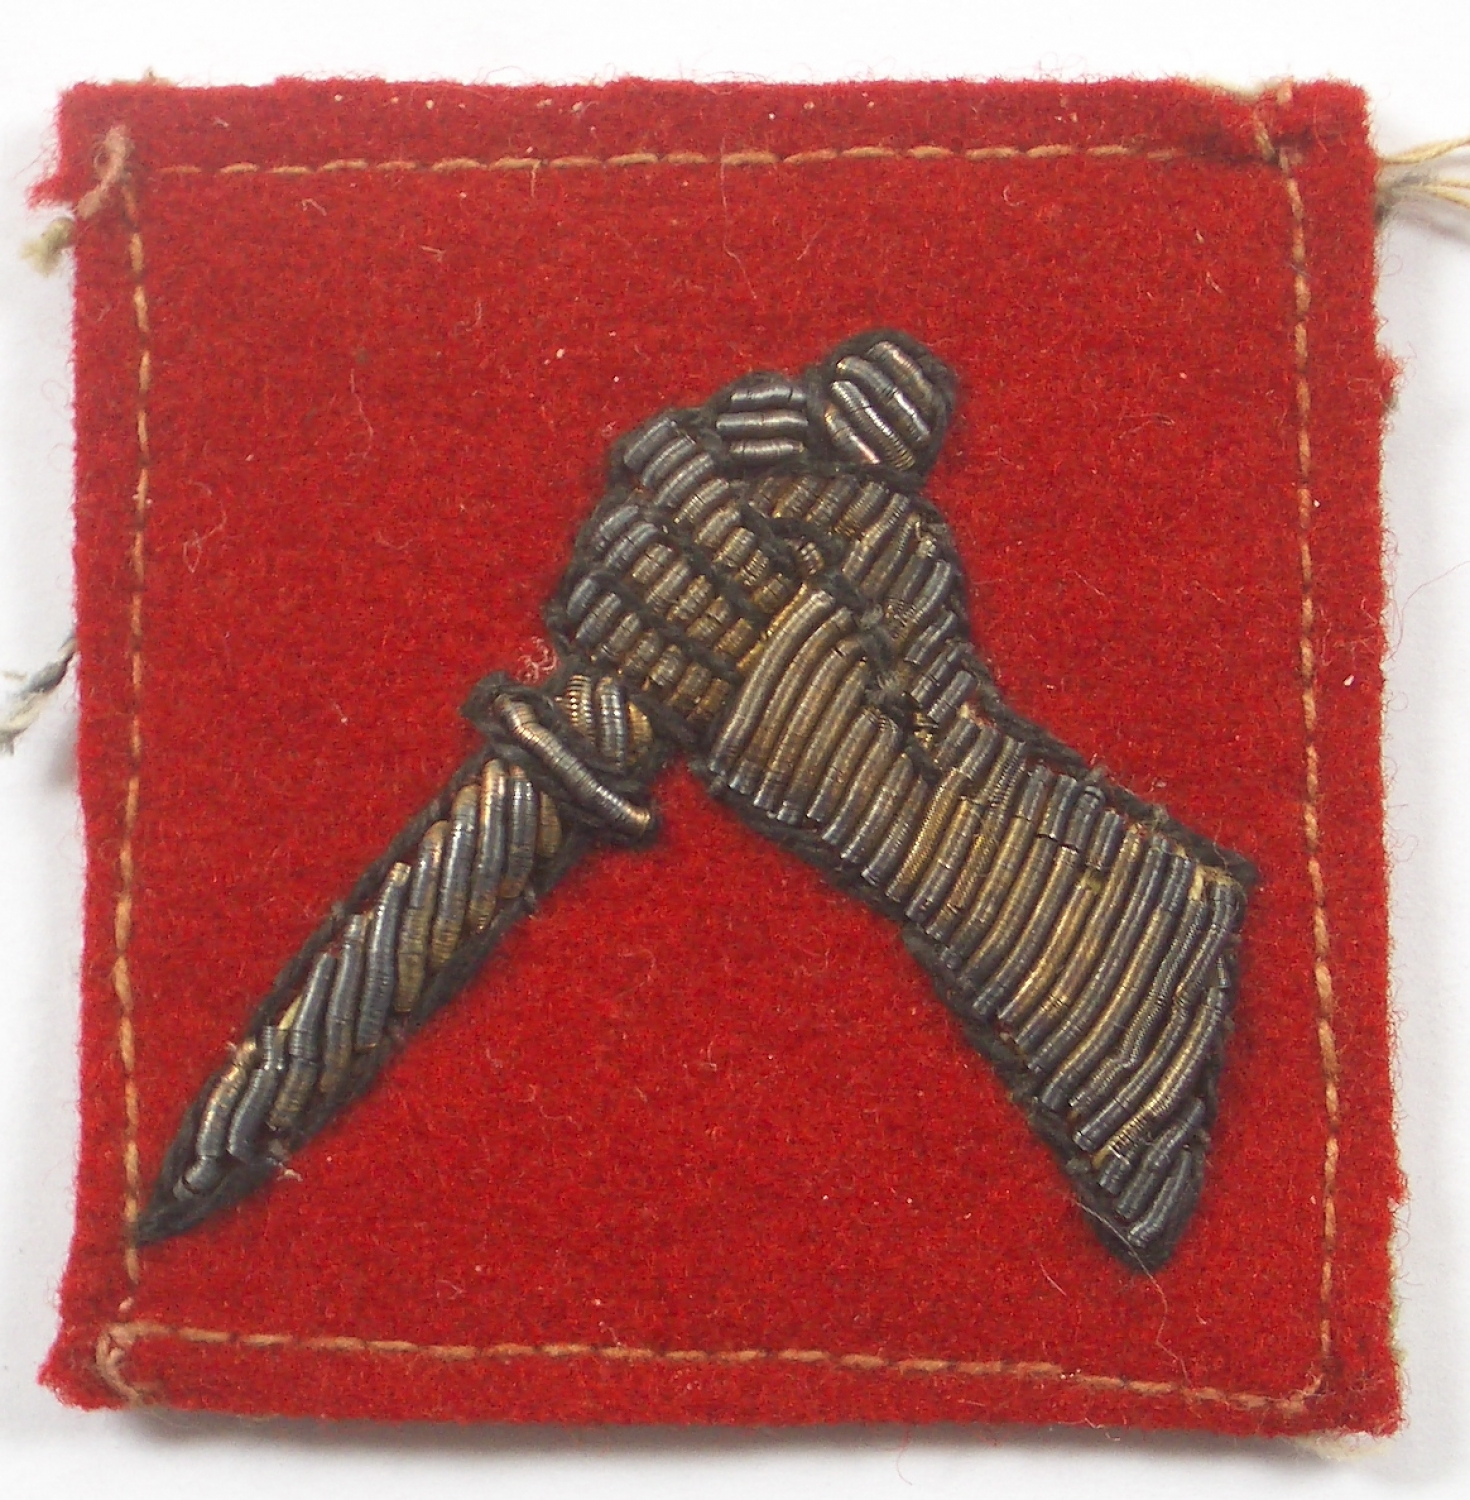 19th Indian Division WW2 formation sign